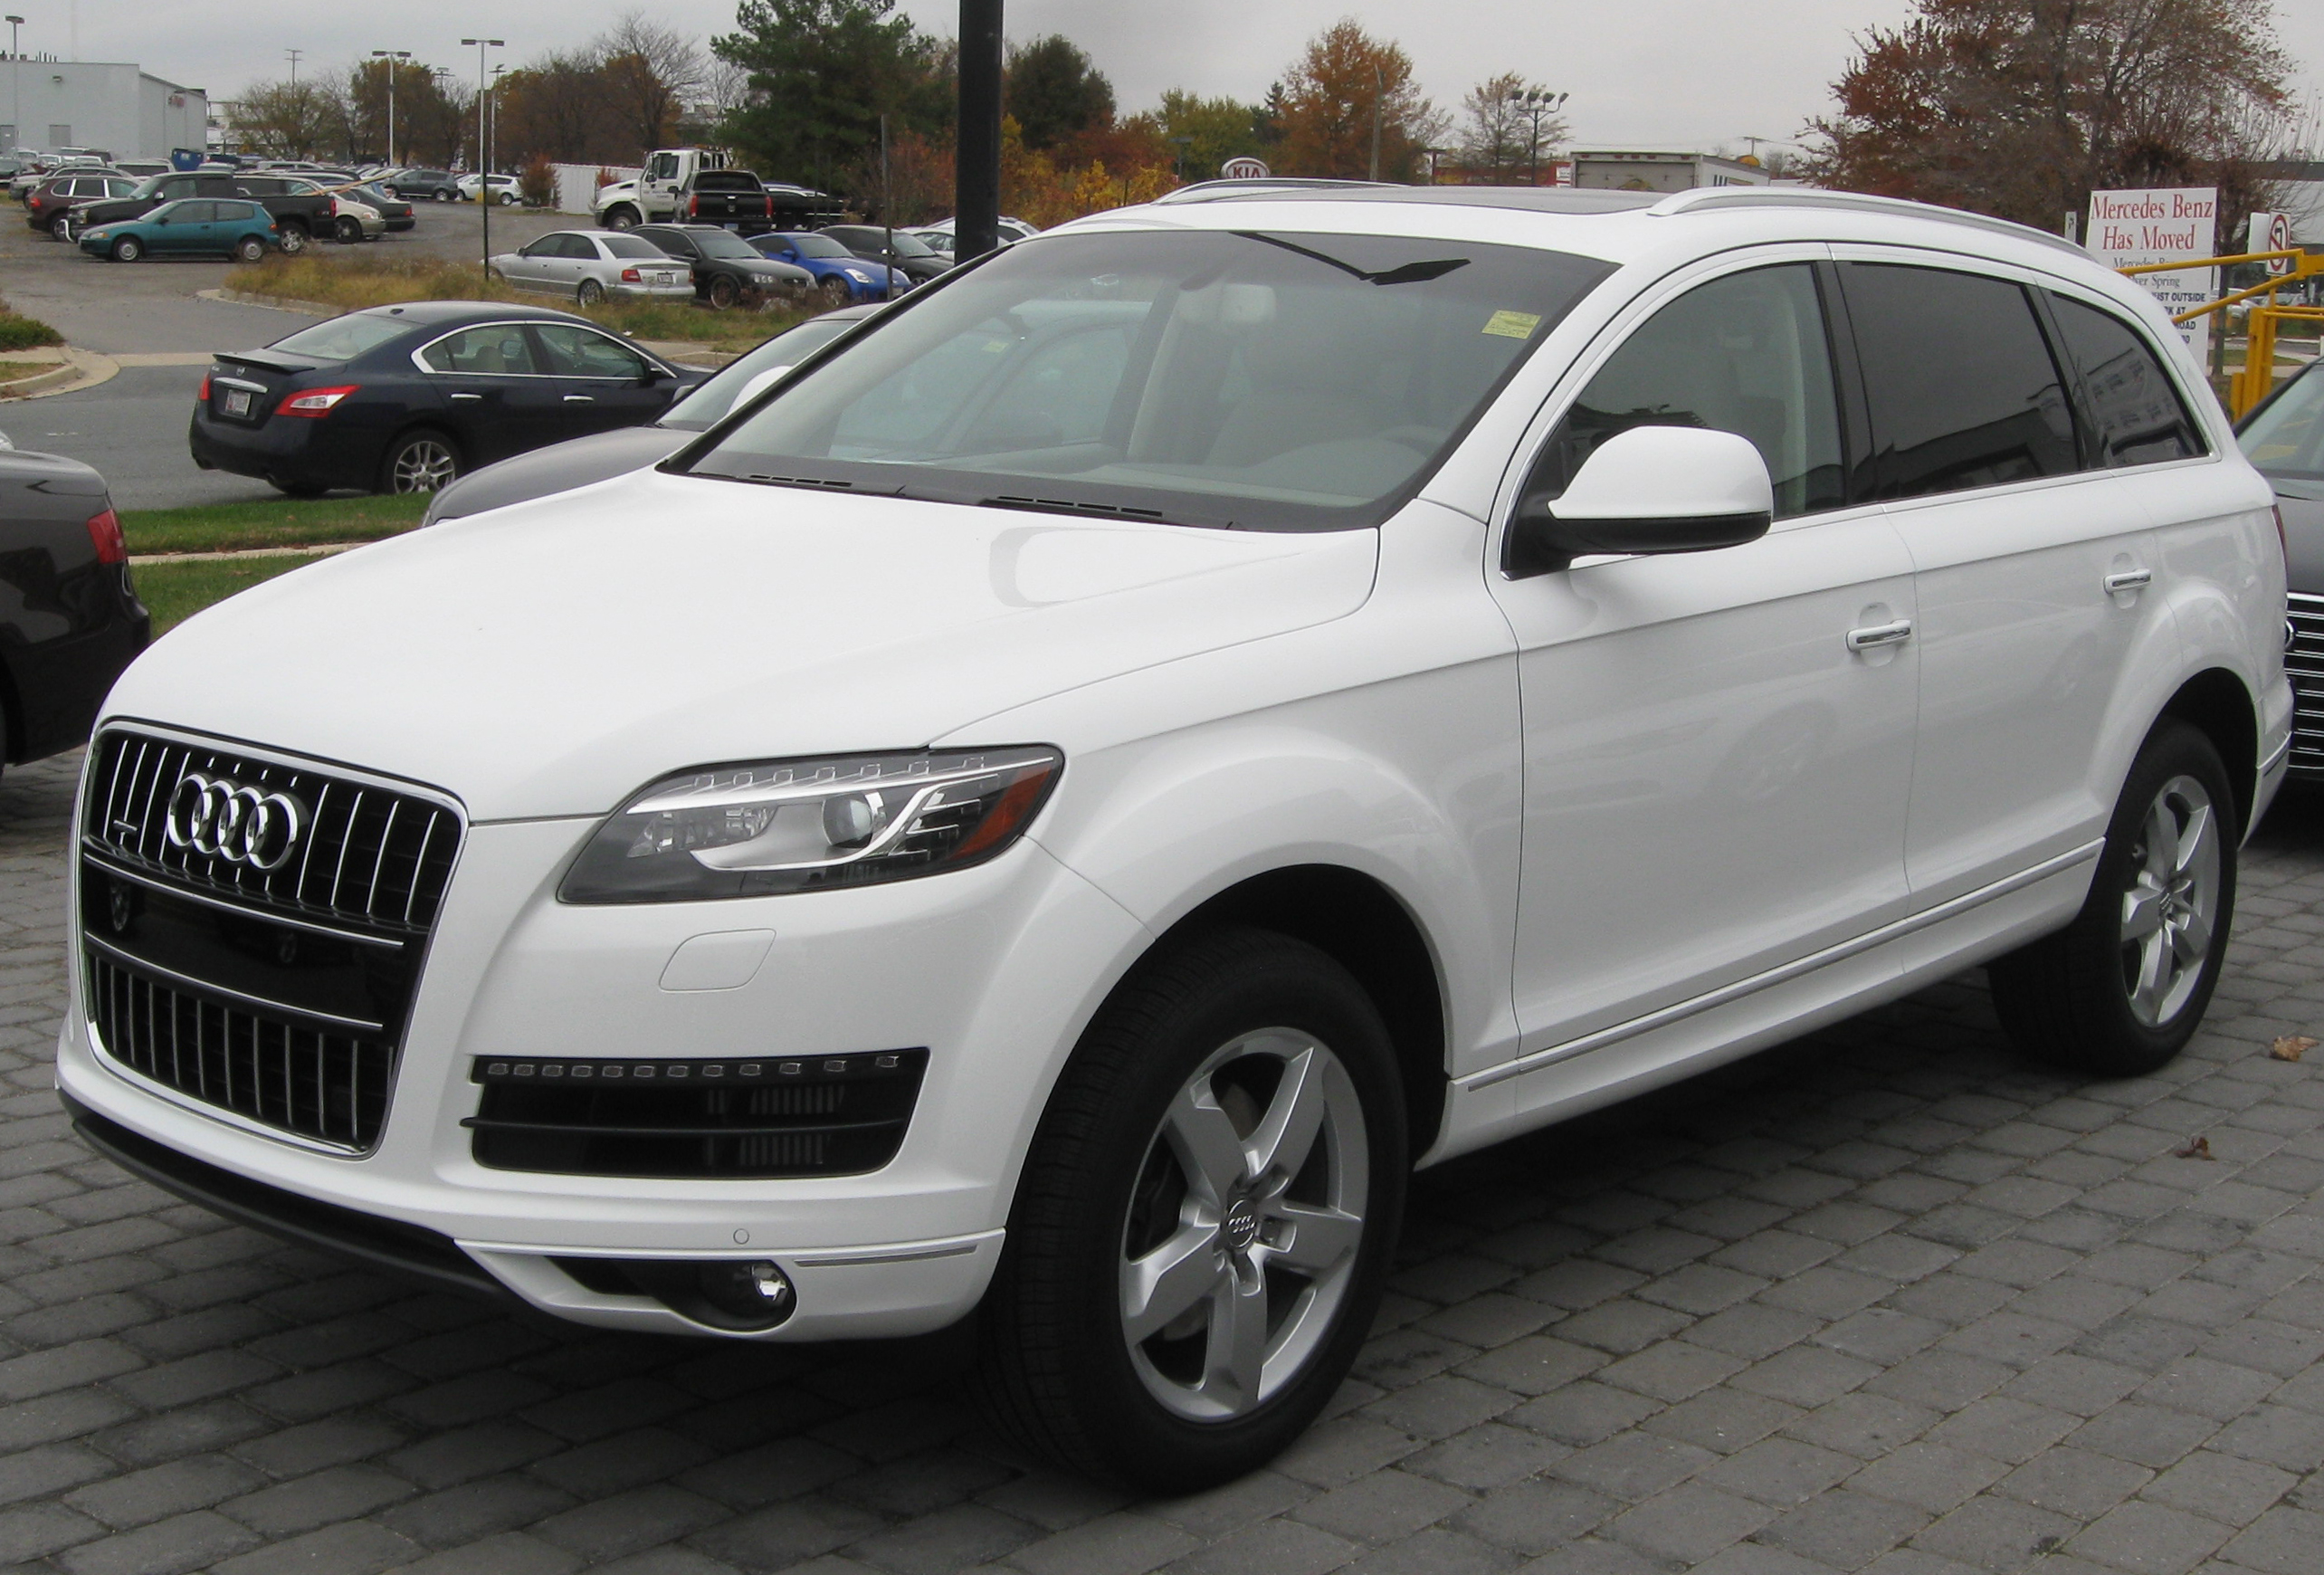 File 2012 Audi Q7 Tdi 11 10 2011 Jpg Wikimedia Commons